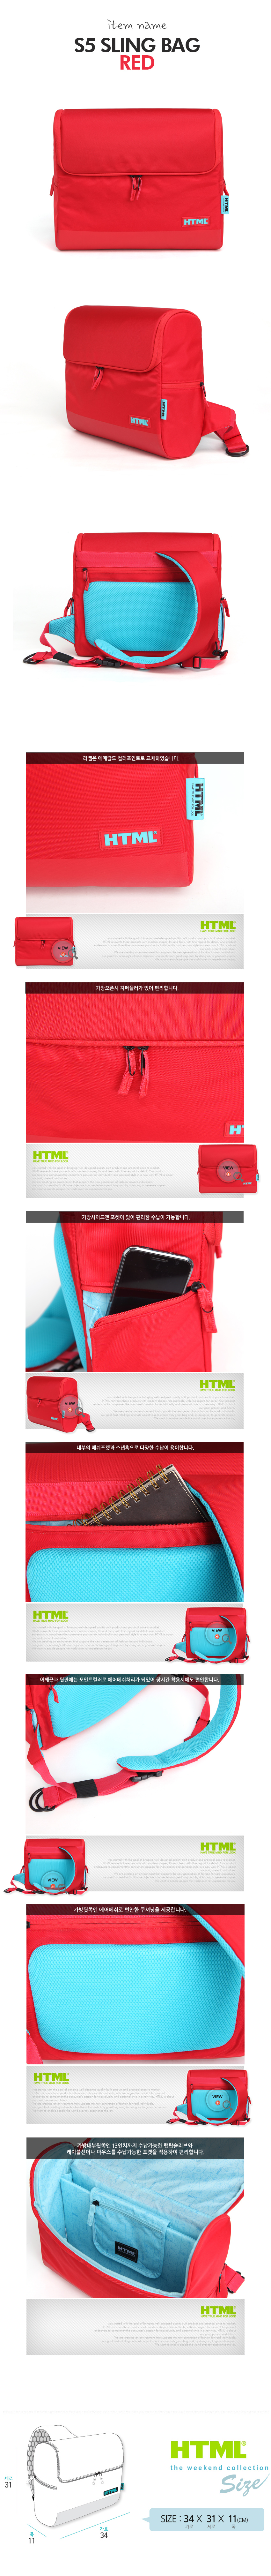 HTML - S5 Slingbag (Red)